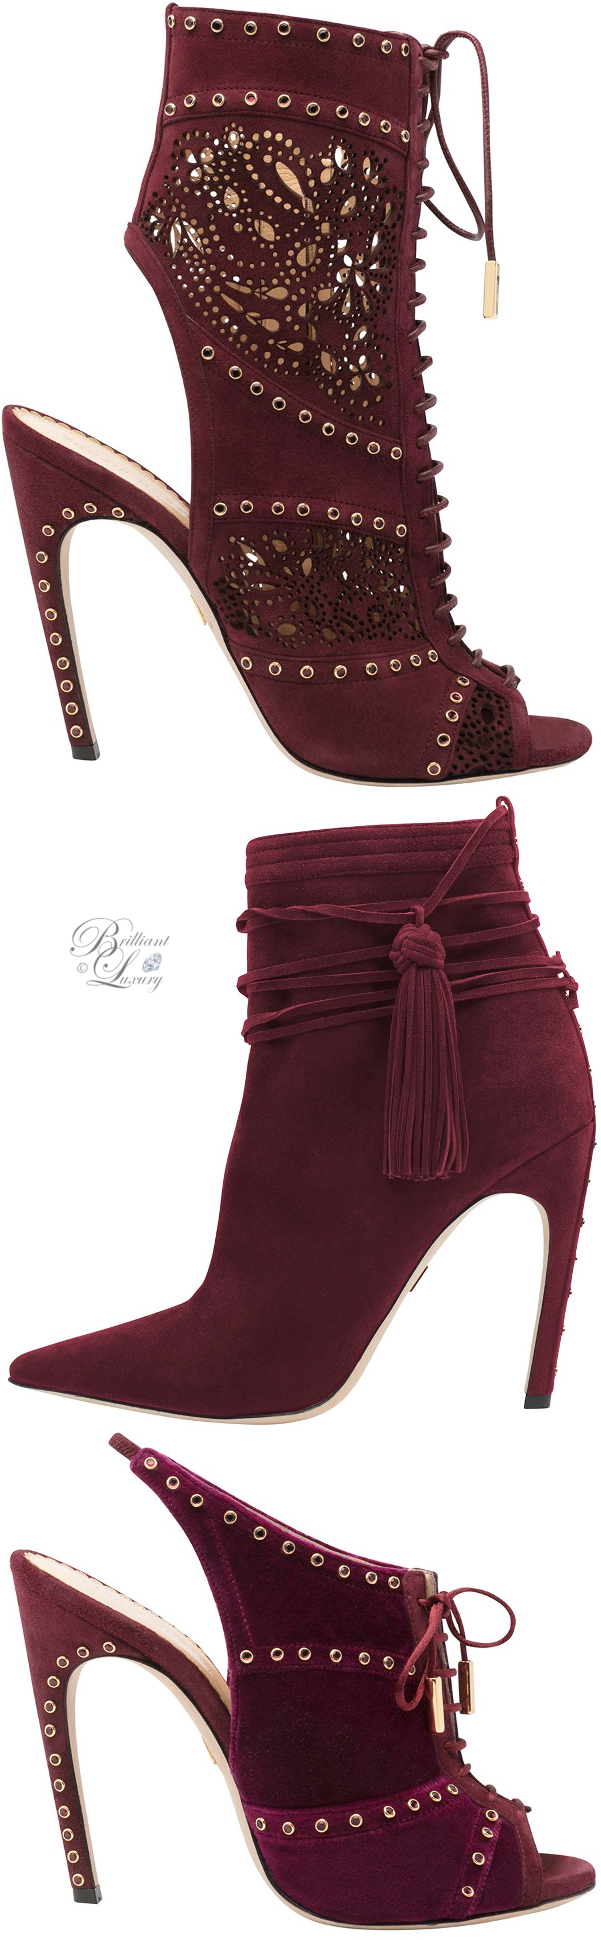 Zuhair Murad shoe collection in burgundy